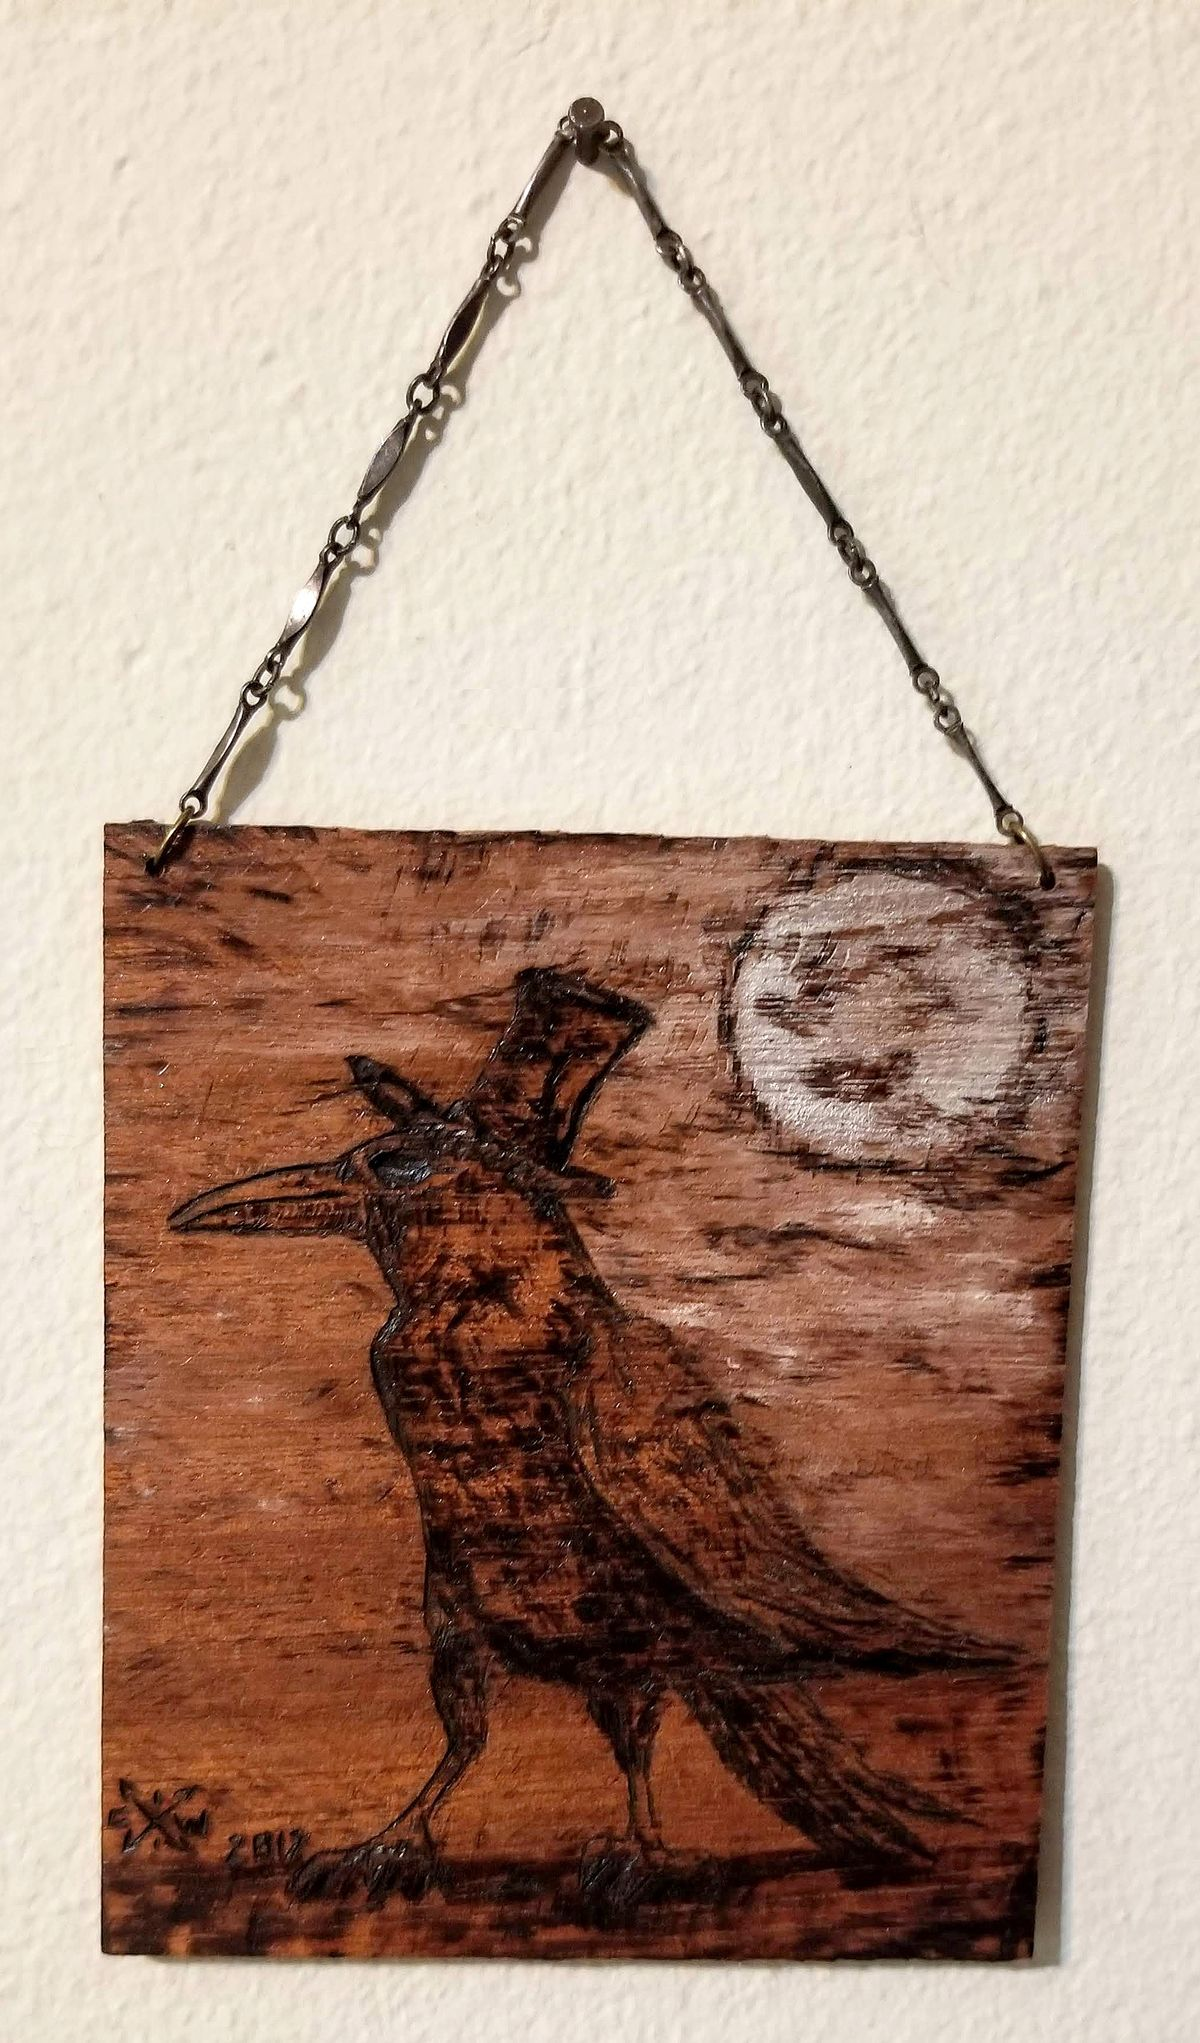 1_Terry and Sarah Snow_Chaos Woods_Odin_s Hat_Austin Art_Austin Artist_Austin Gifts.jpg